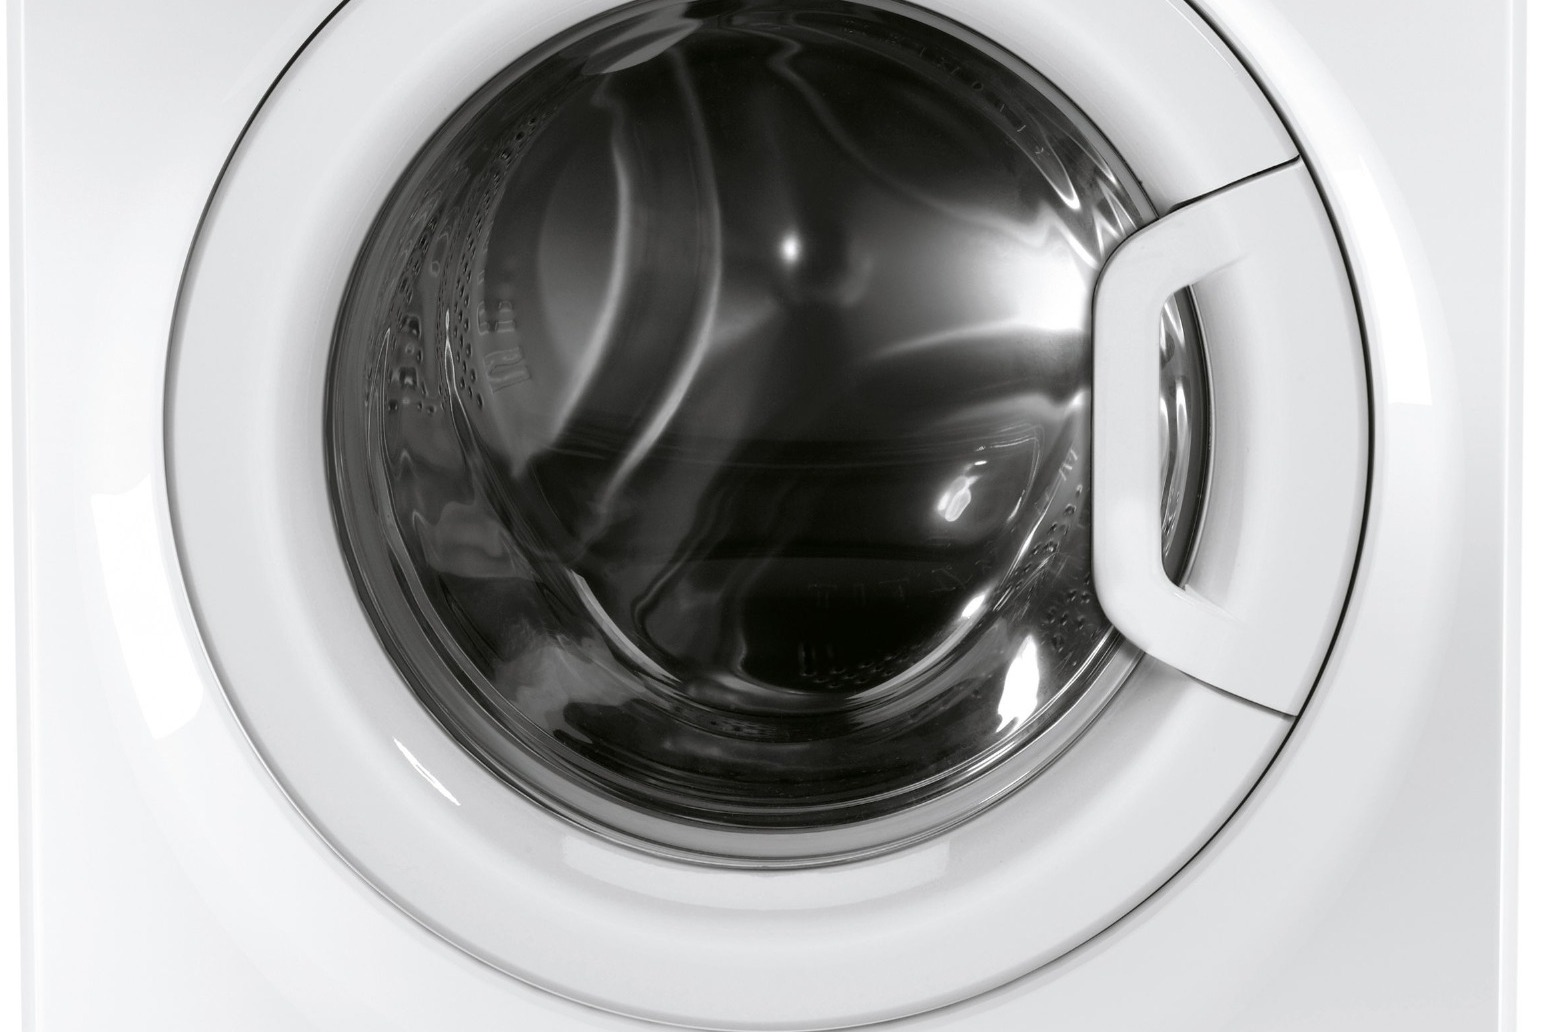 WHIRLPOOL TO RECALL HUNDREDS OF THOUSANDS OF FIRE-RISK WASHING MACHINES